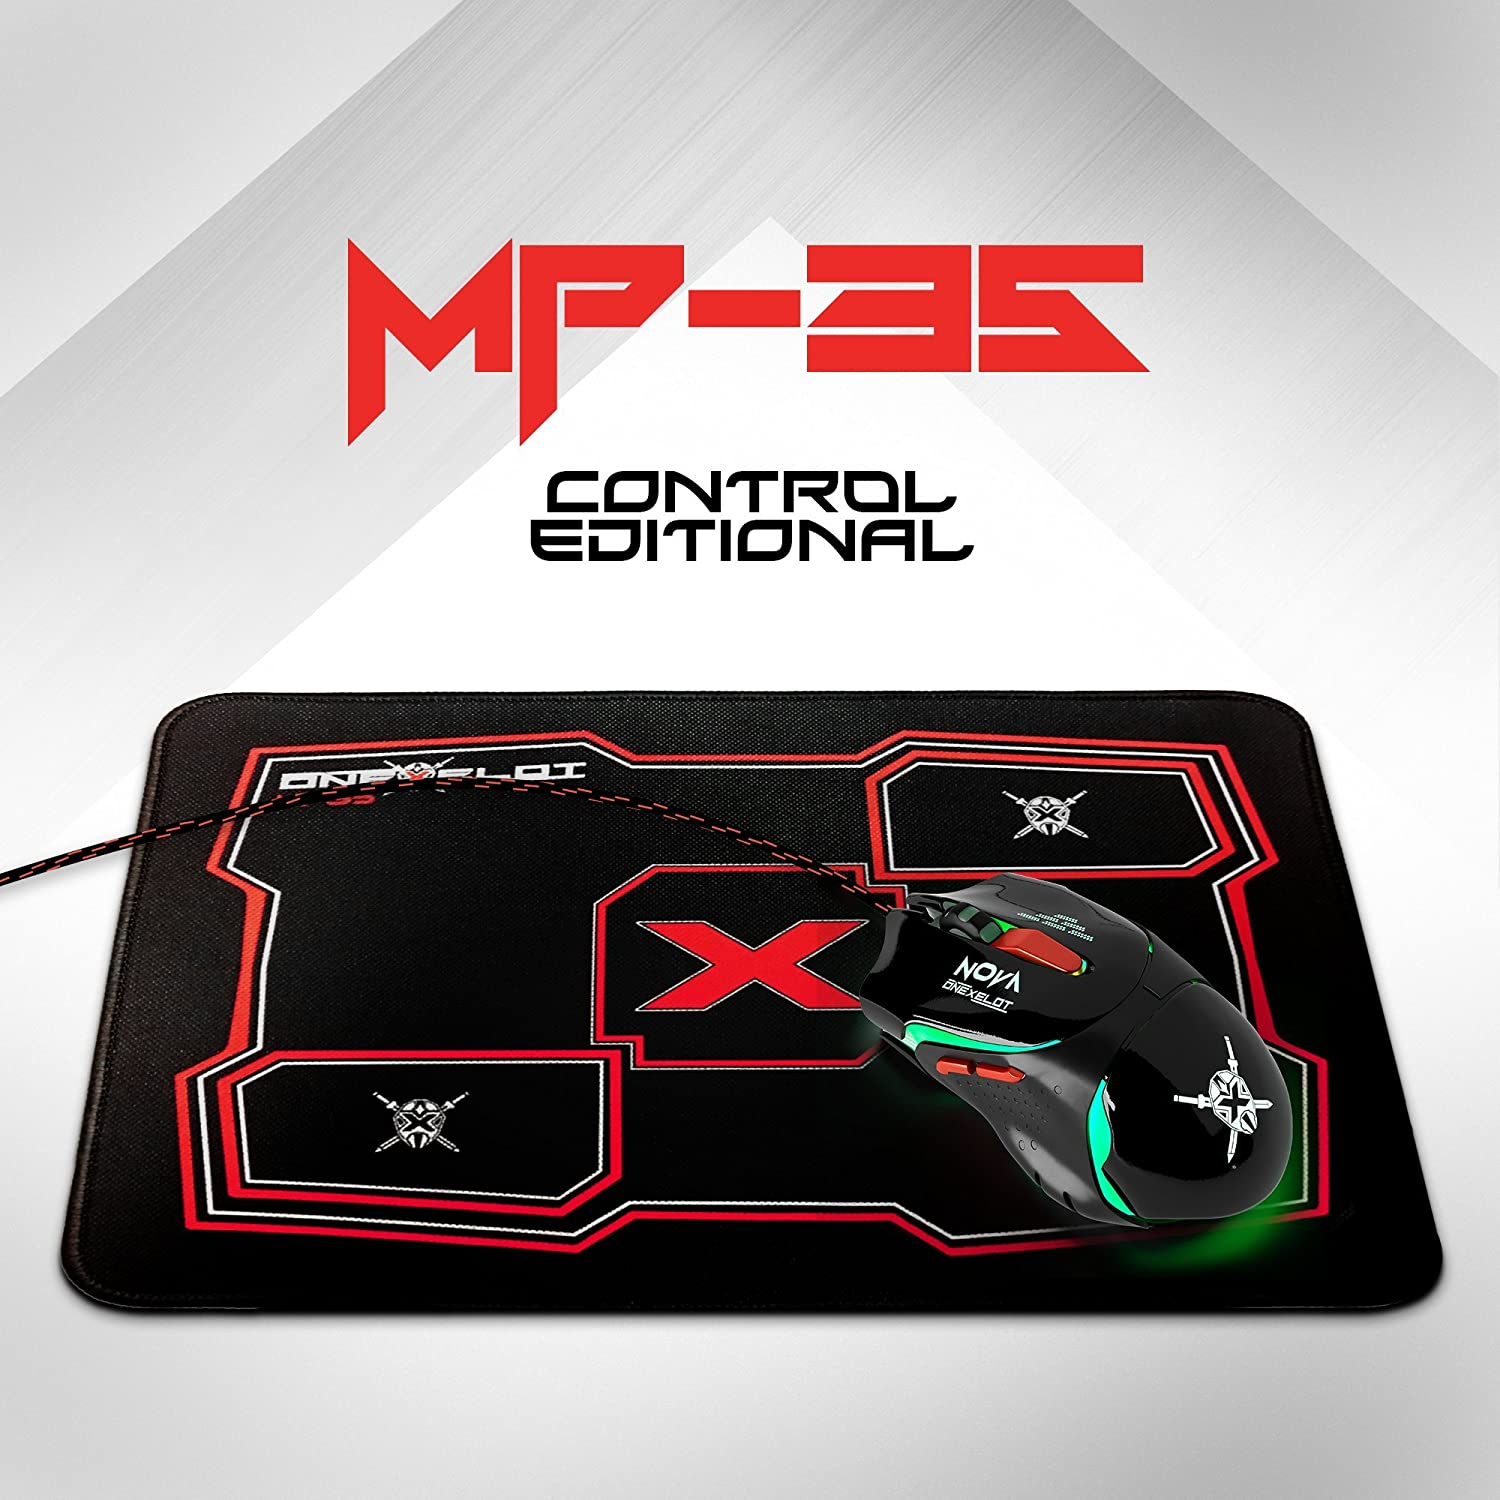 Stitched Edges ONEXELOT MP-25-Z Gaming Mouse Pad,Waterproof Ultra Thick Silky Smooth